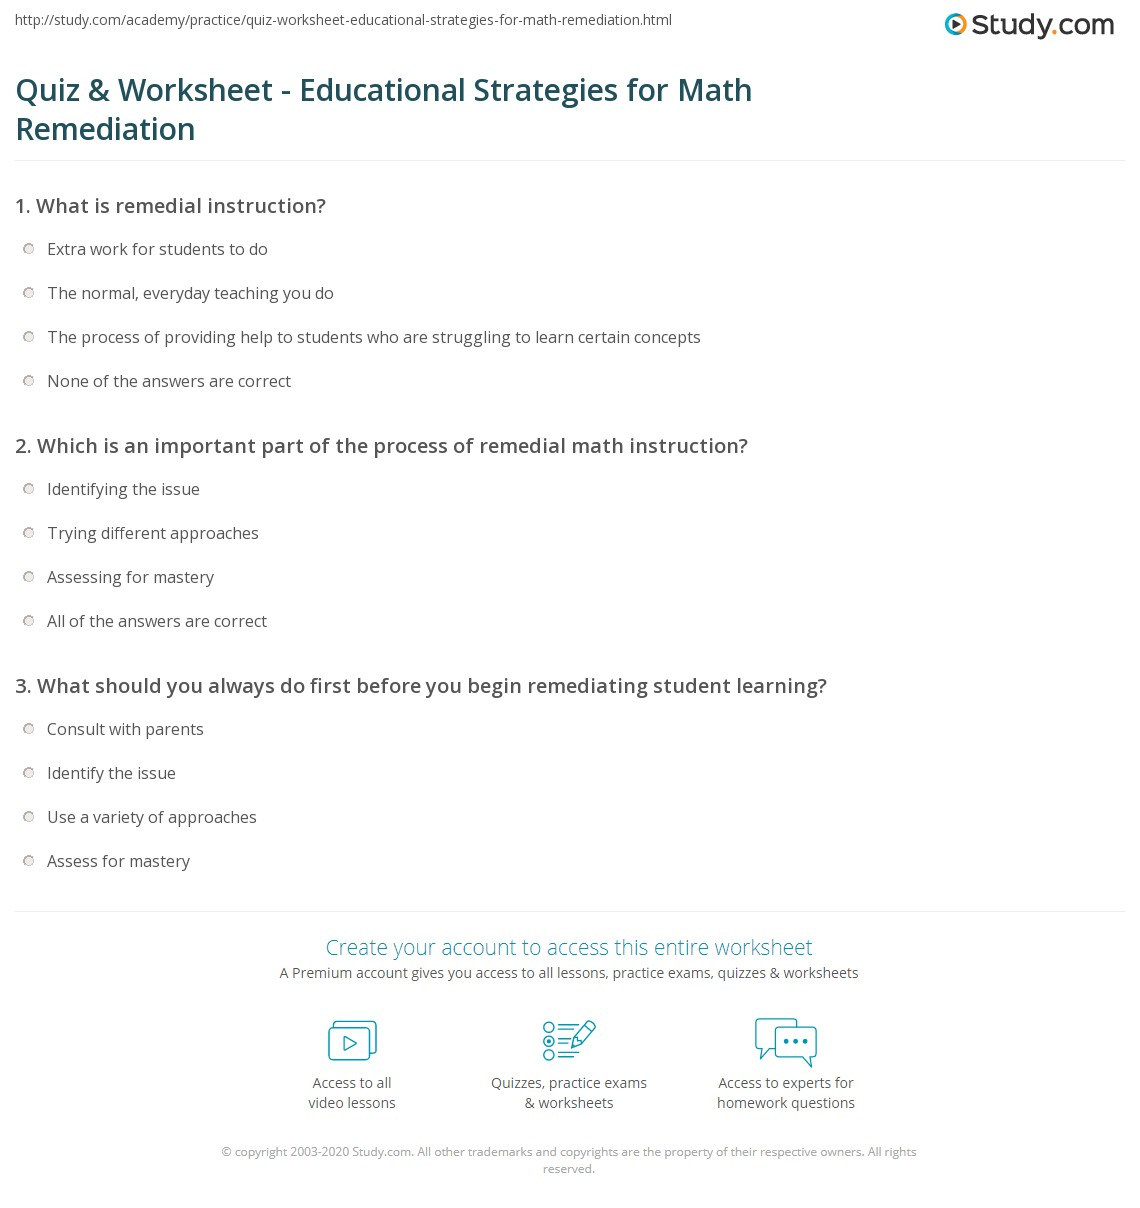 Printables Remedial Math Worksheets quiz worksheet educational strategies for math remediation print teaching methods remedial worksheet